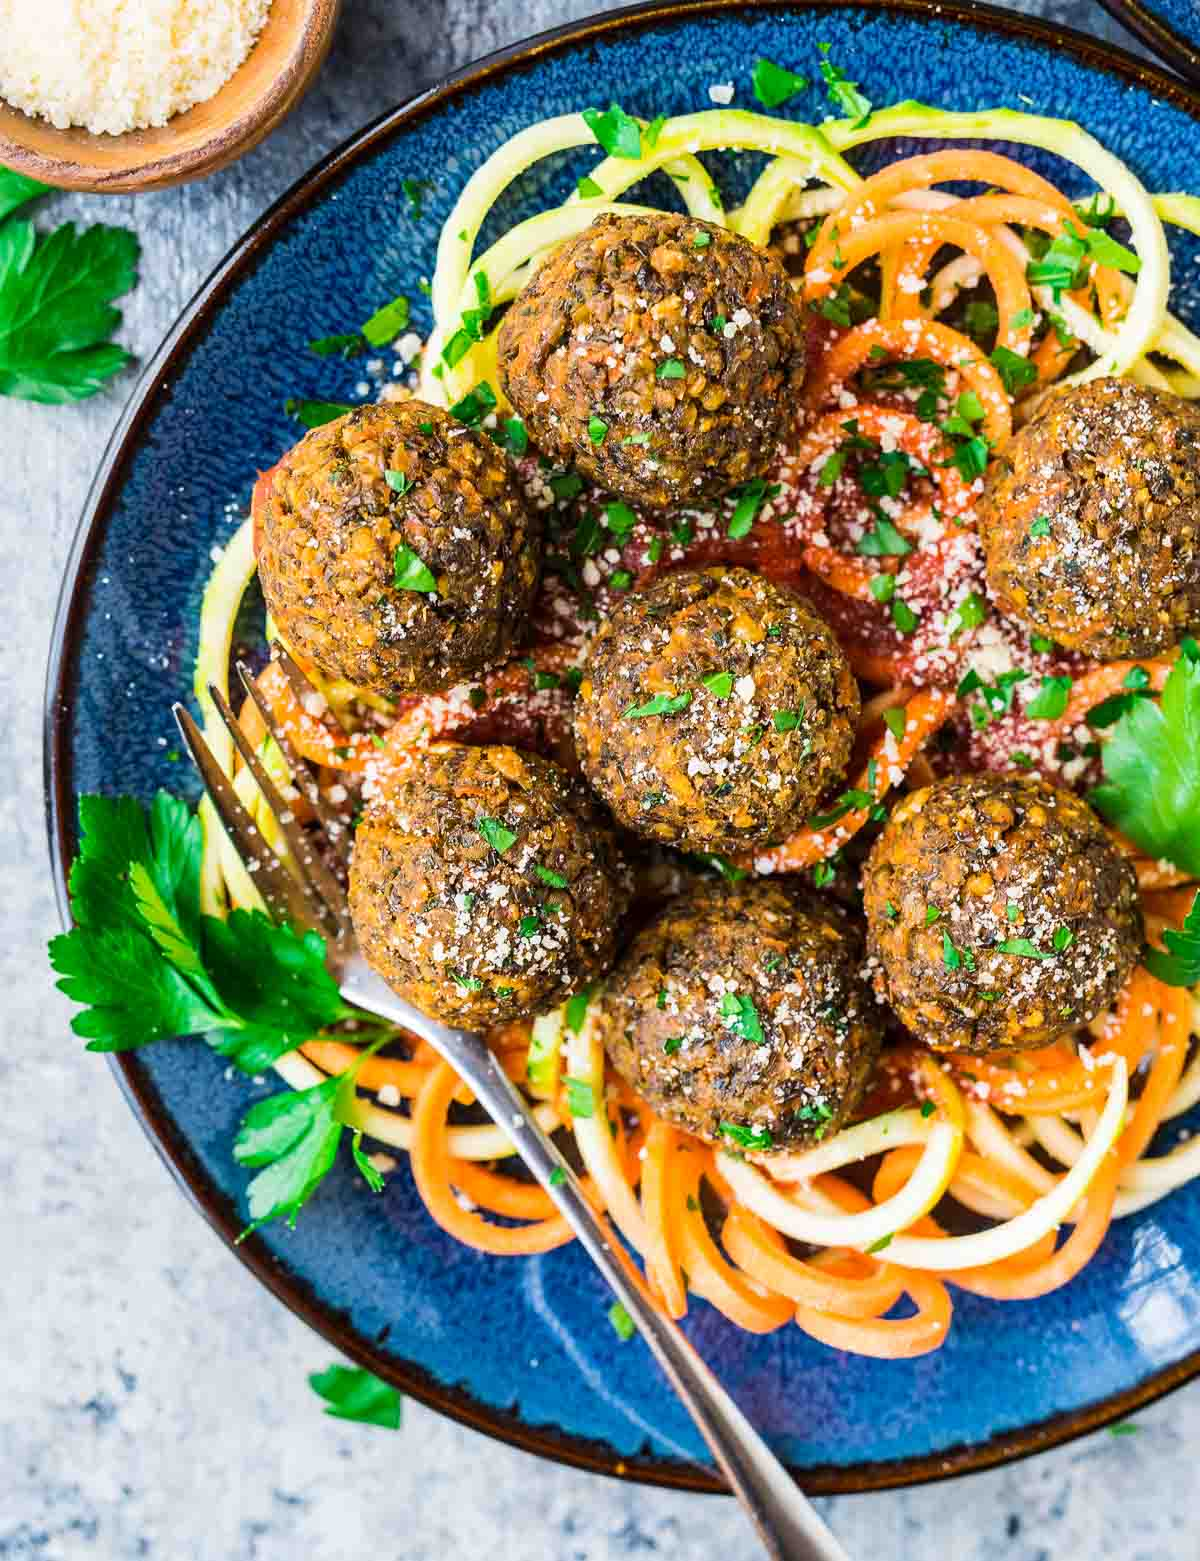 Easy Vegetarian Lentil Meatballs. A simple, healthy baked meatball recipe that's perfect for meatless dinners. Recipe at wellplated.com   @wellplated